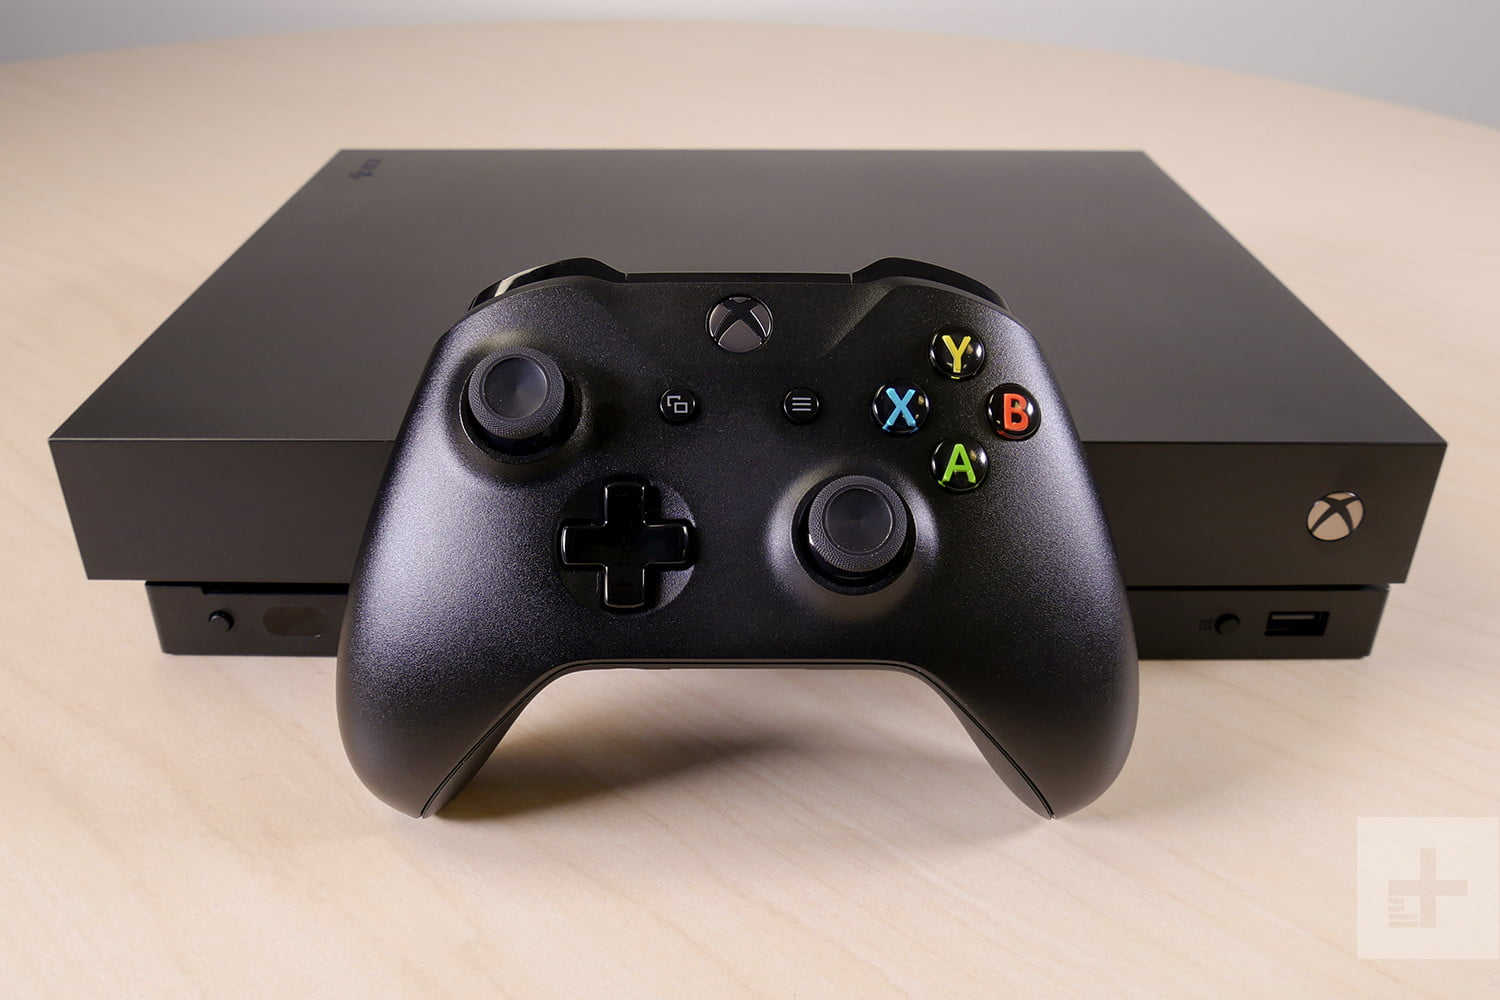 How To Appear Offline on Xbox One | Digital Trends